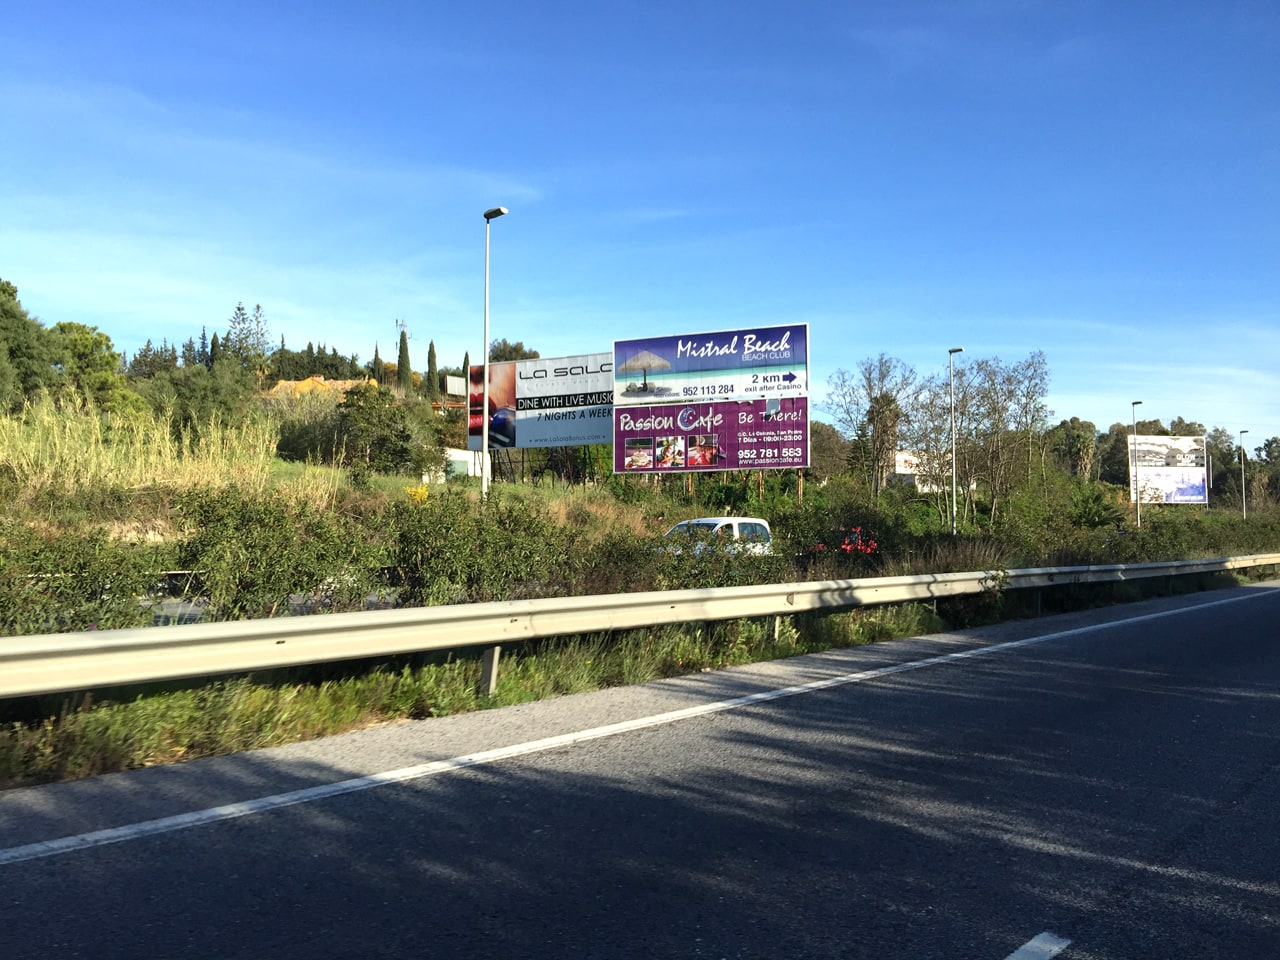 Advertising billboard design and hiring for Mistral Beach in Puerto Banús